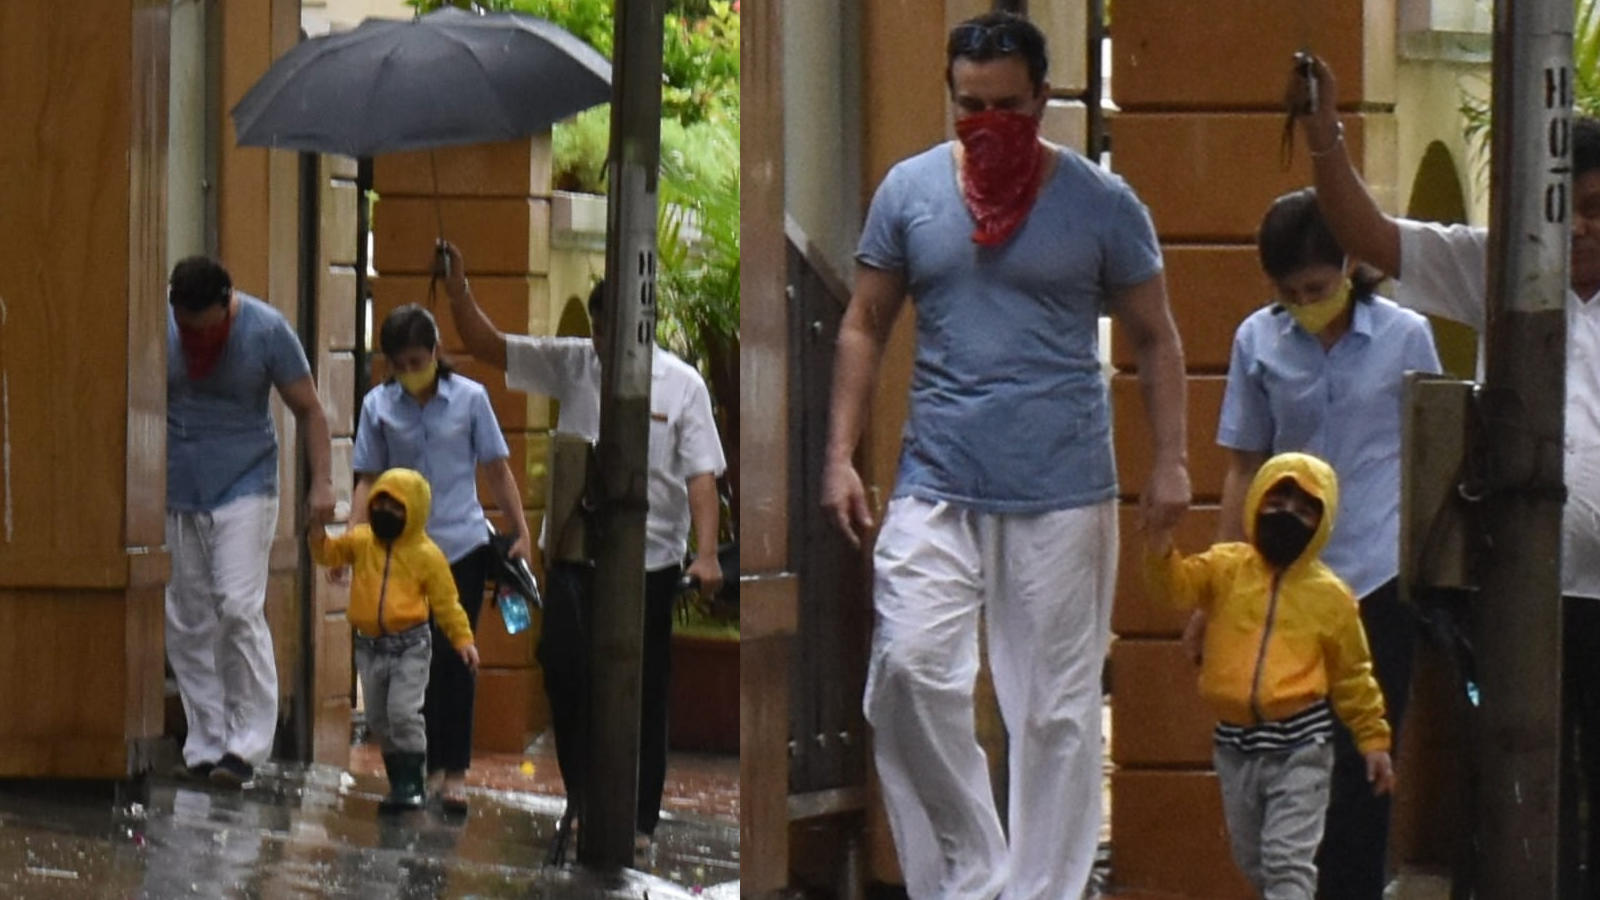 saif-ali-khan-and-son-taimur-ali-khan-enjoy-a-walk-in-mumbai-rain-tim-tim-has-our-full-attention-donning-a-super-cute-yellow-raincoat